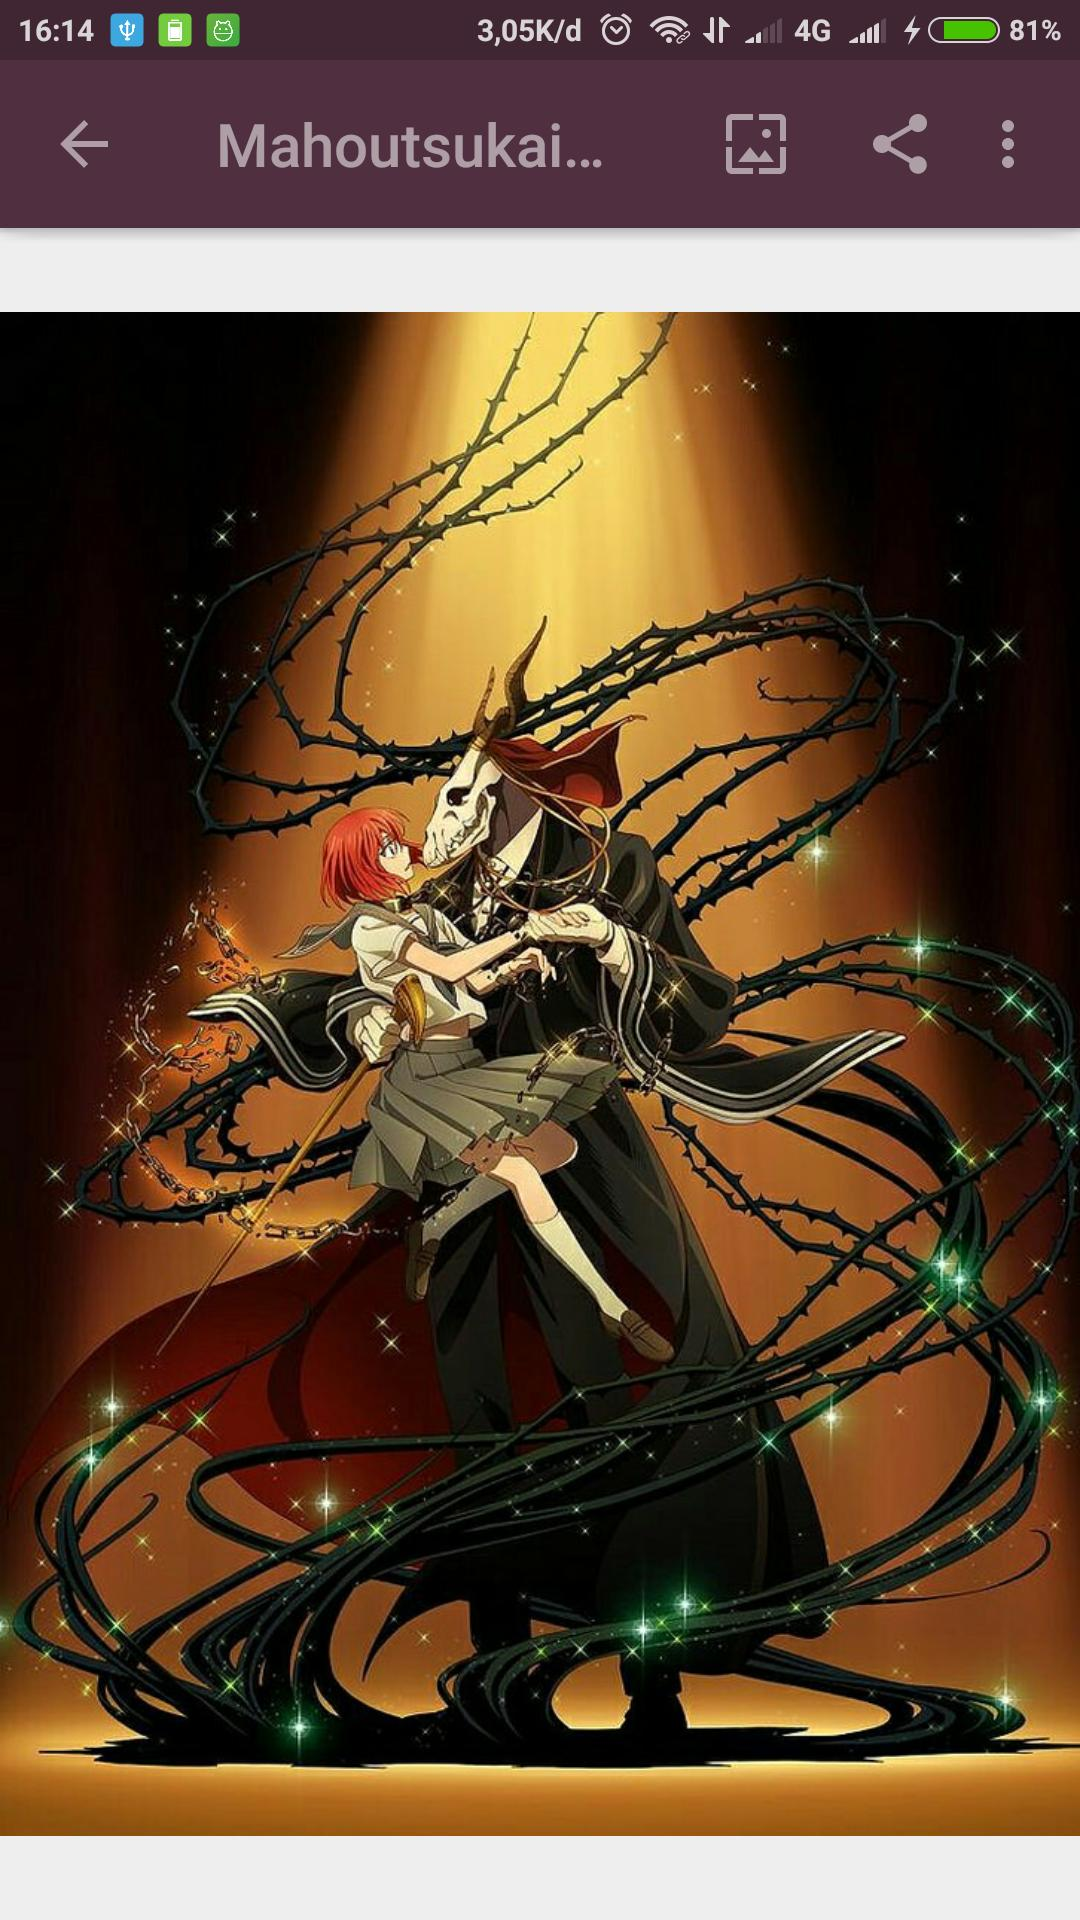 Mahoutsukai Yome Wallpaper Hd For Android Apk Download